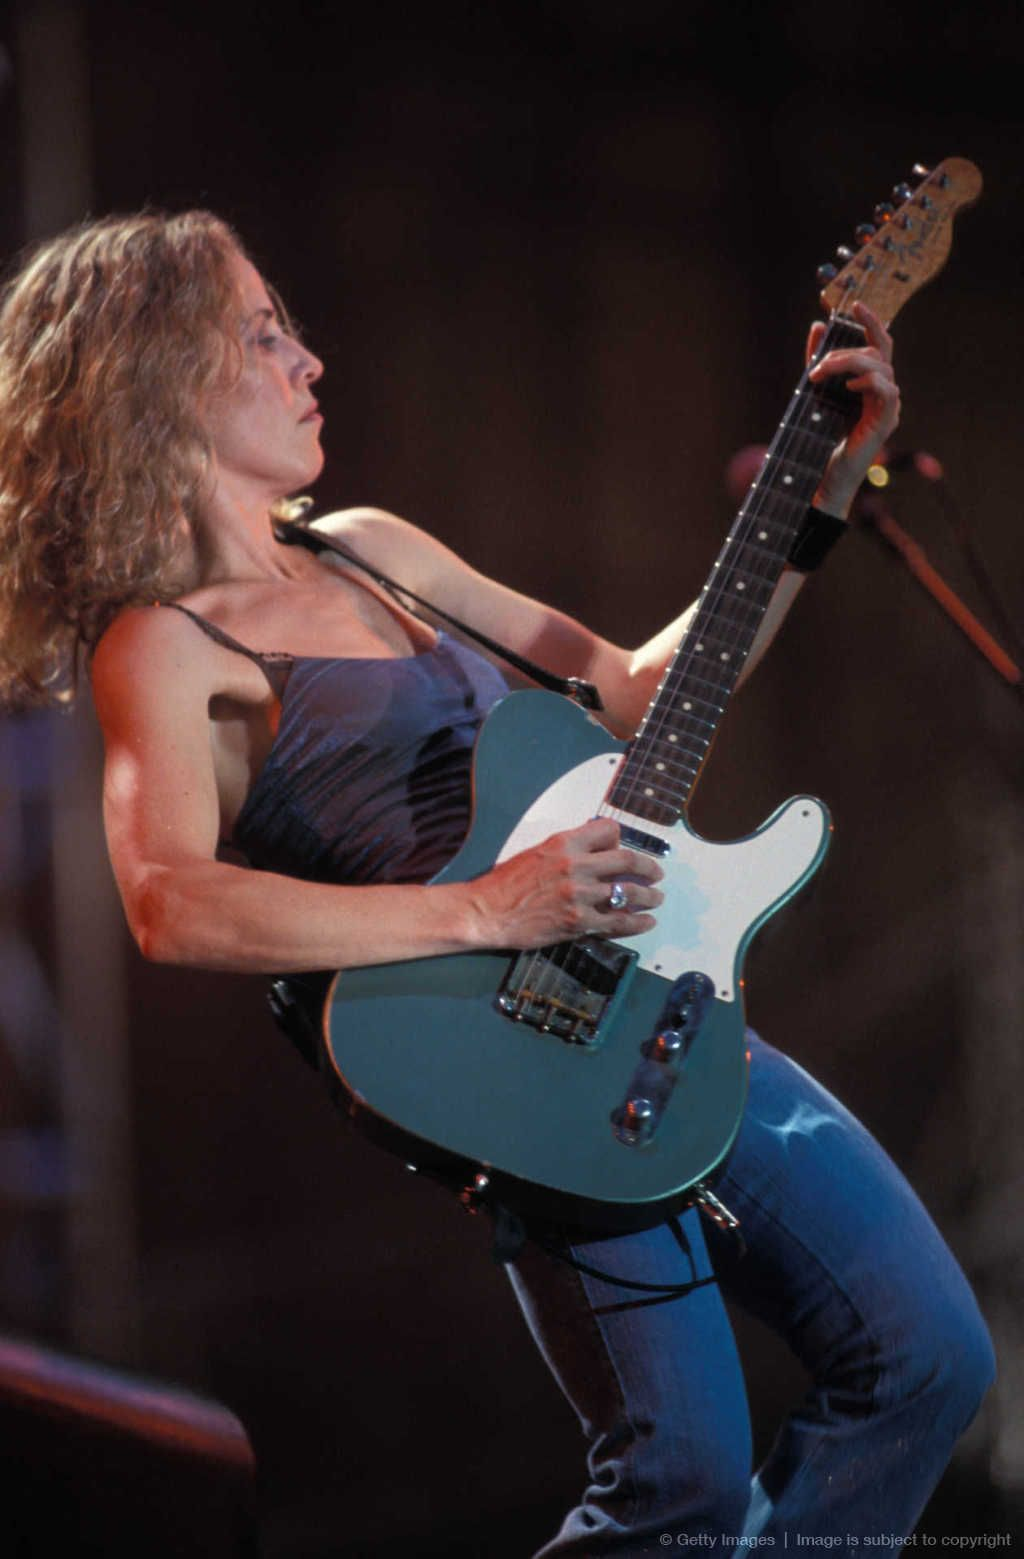 Sheryl Crow: a woman with a guitar. Wow!